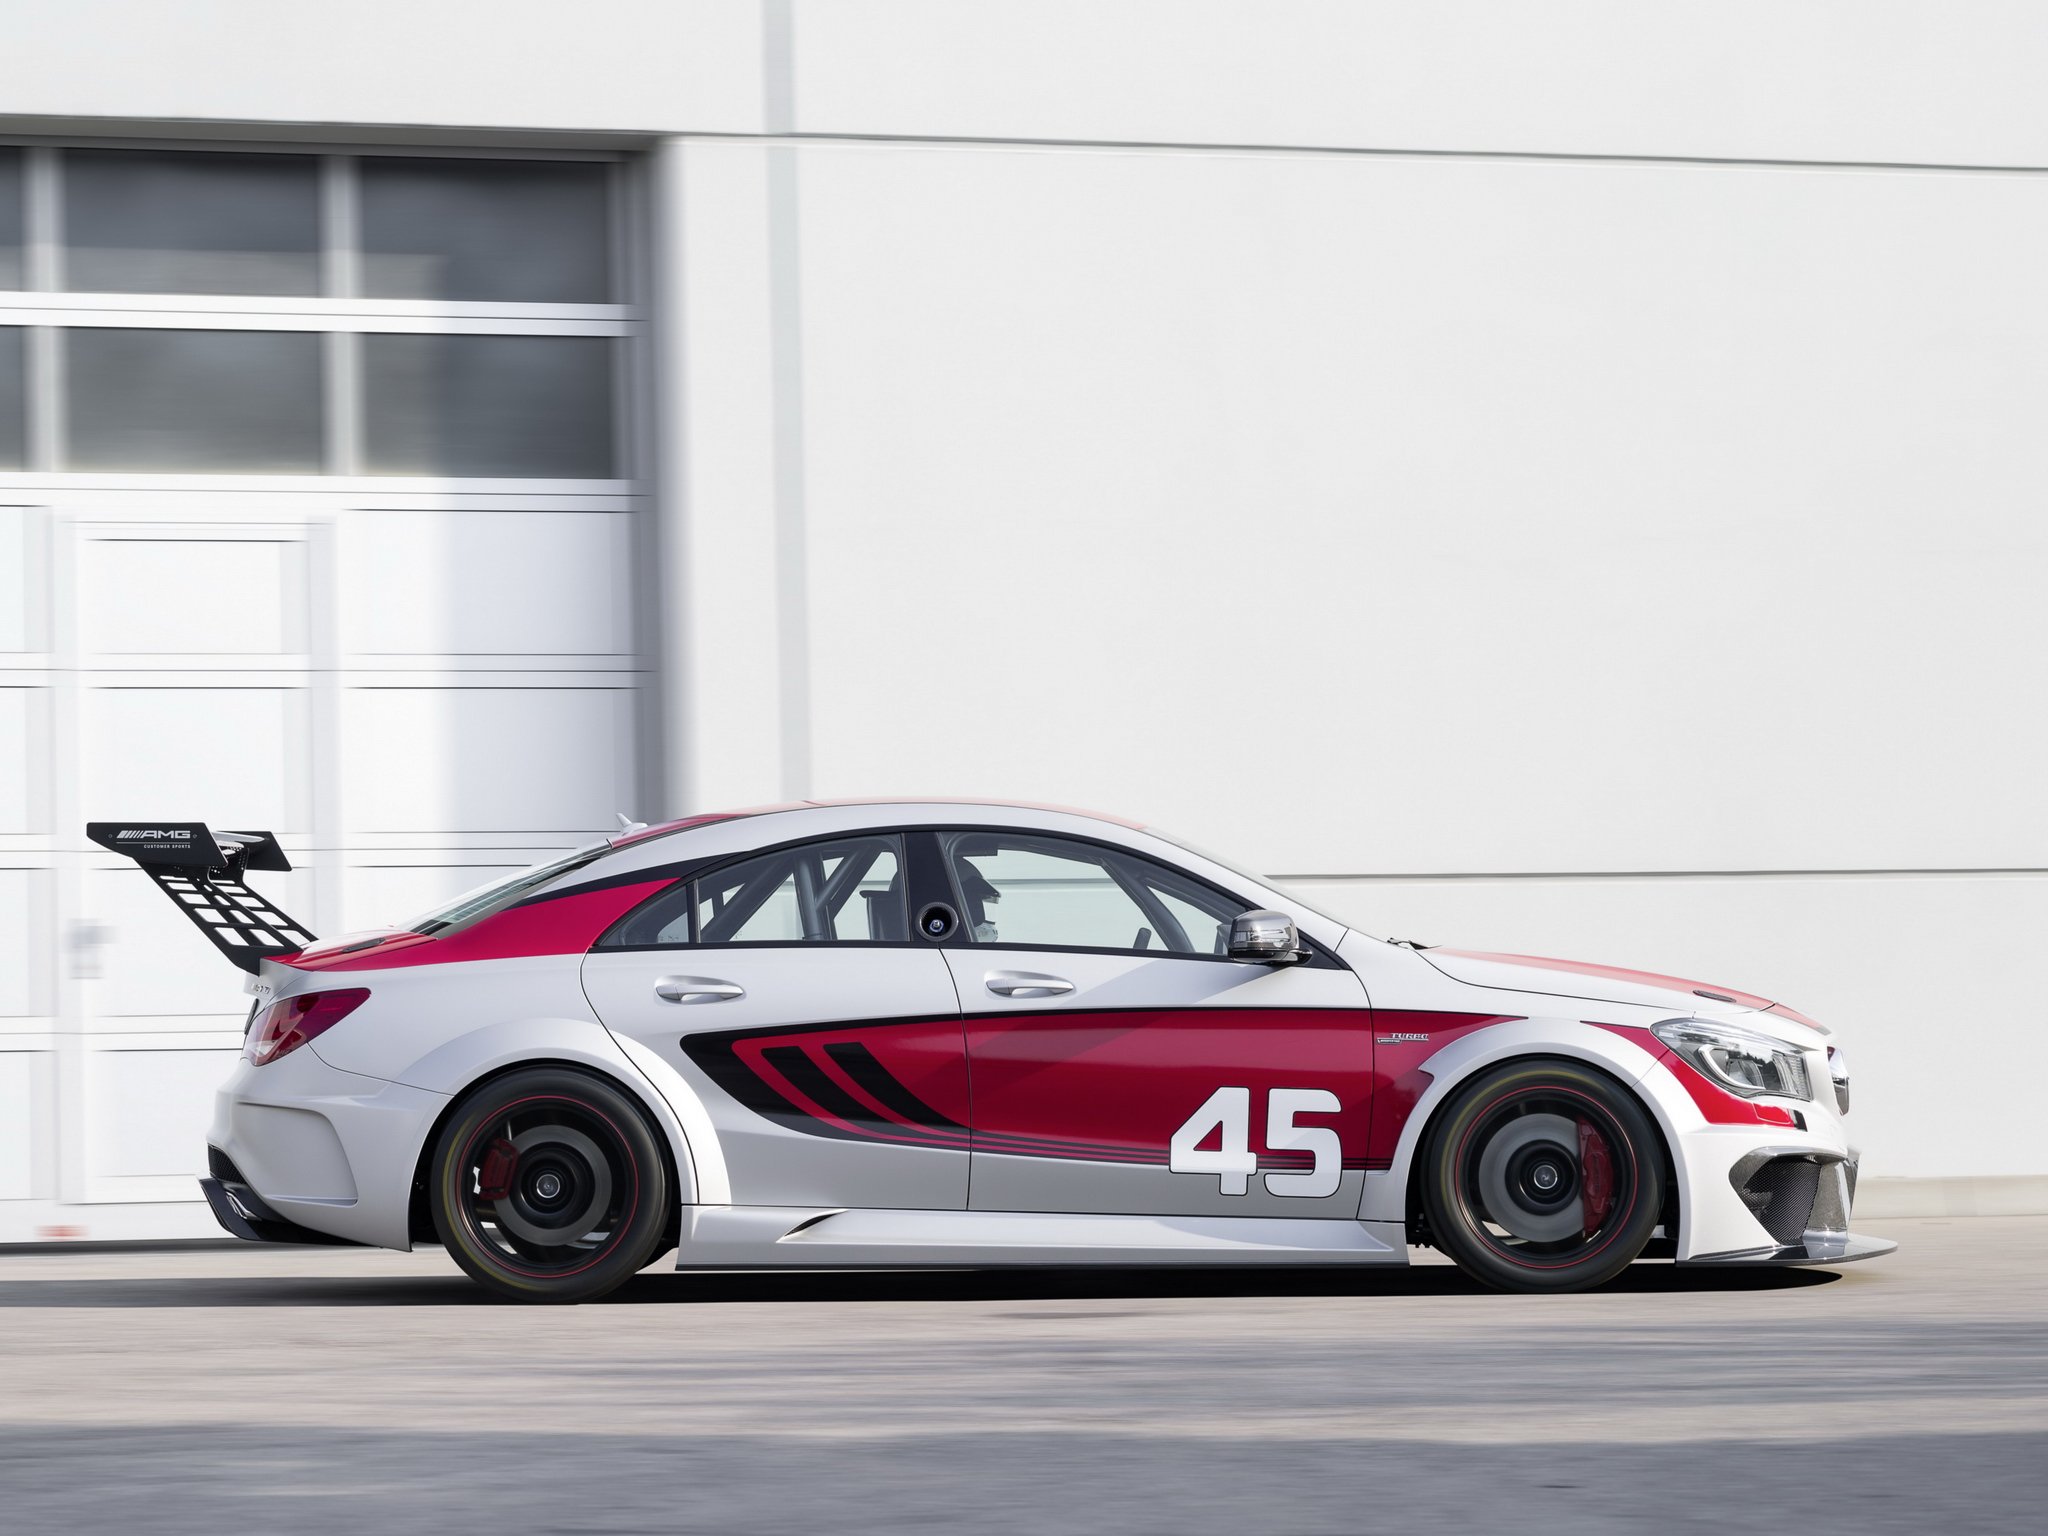 2013 mercedes benz cla 45 amg c117 concept race racing. Black Bedroom Furniture Sets. Home Design Ideas